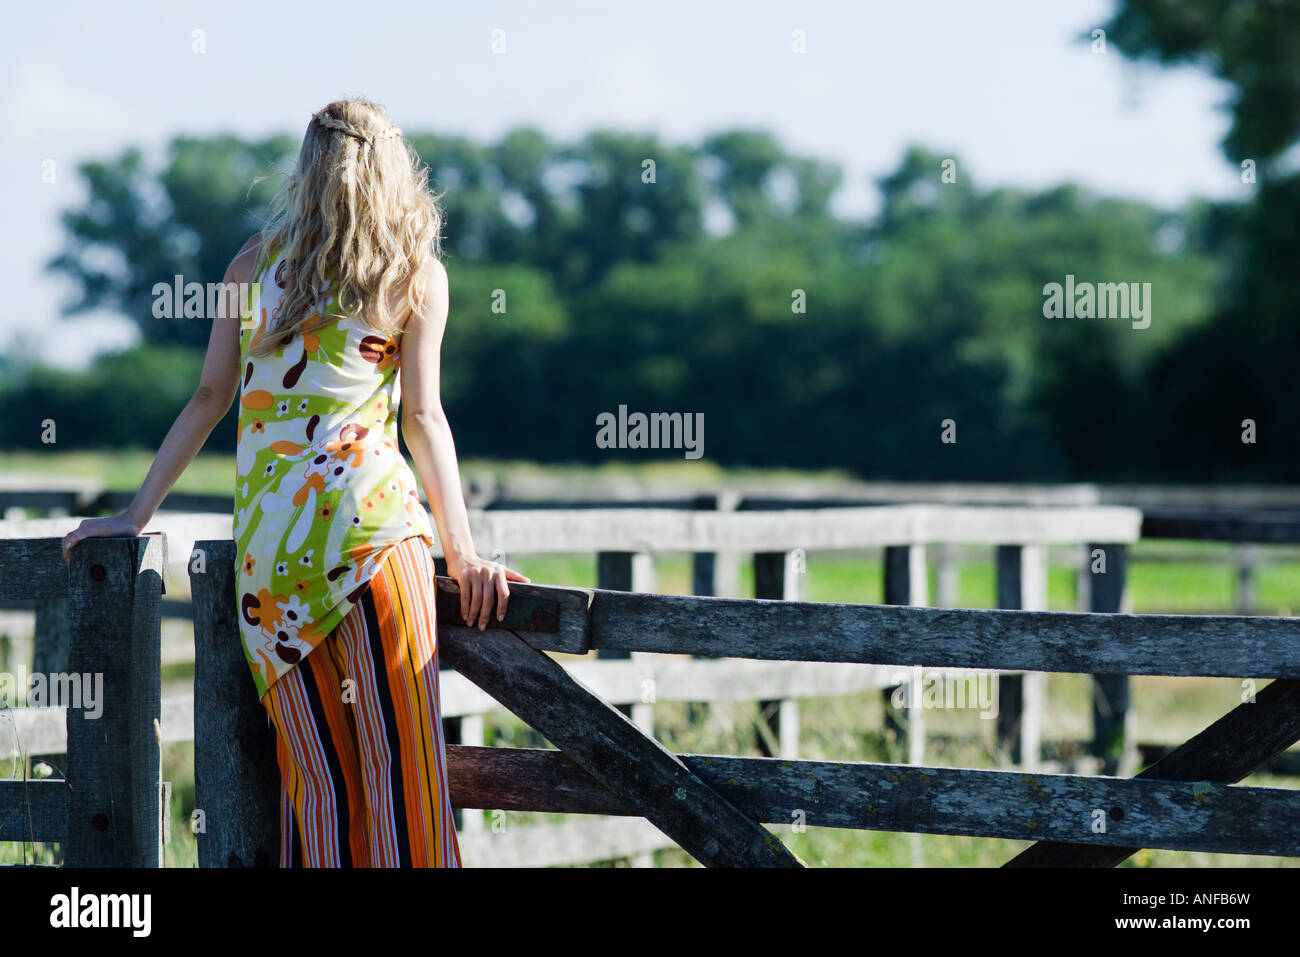 Young woman leaning against rural fence, rear view - Stock Image